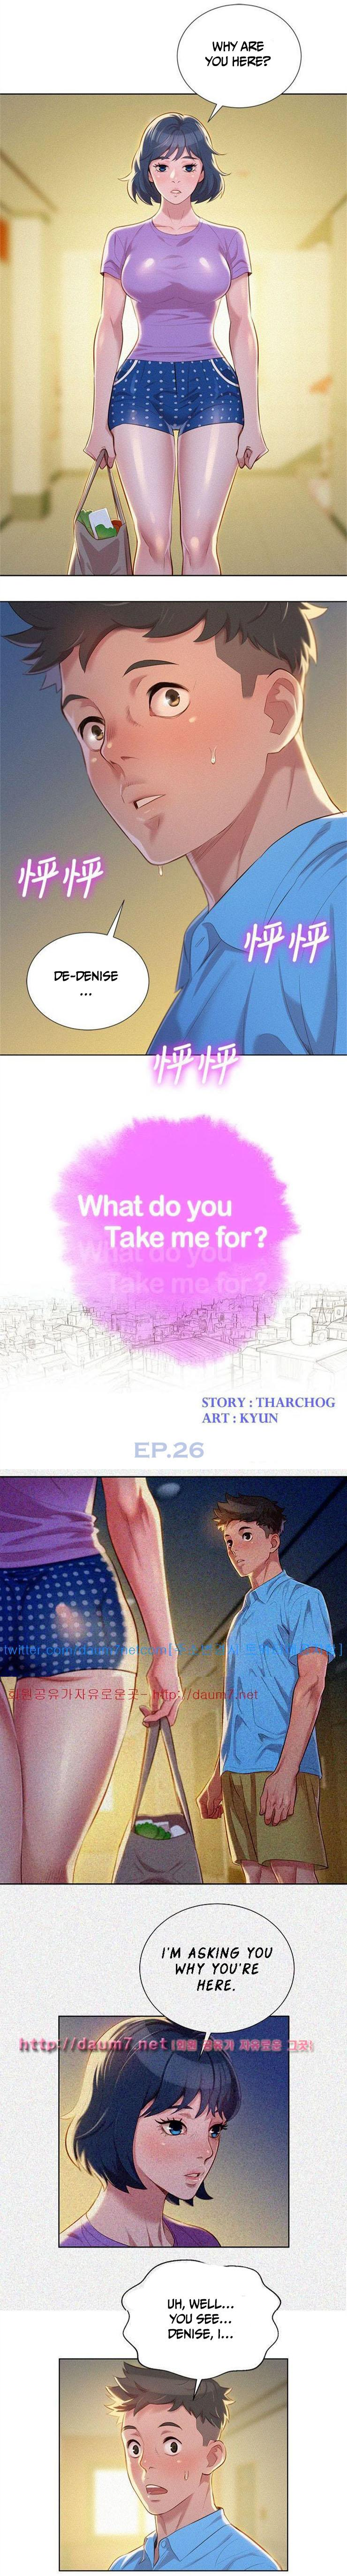 What do you Take me For? Ch.26/? 297